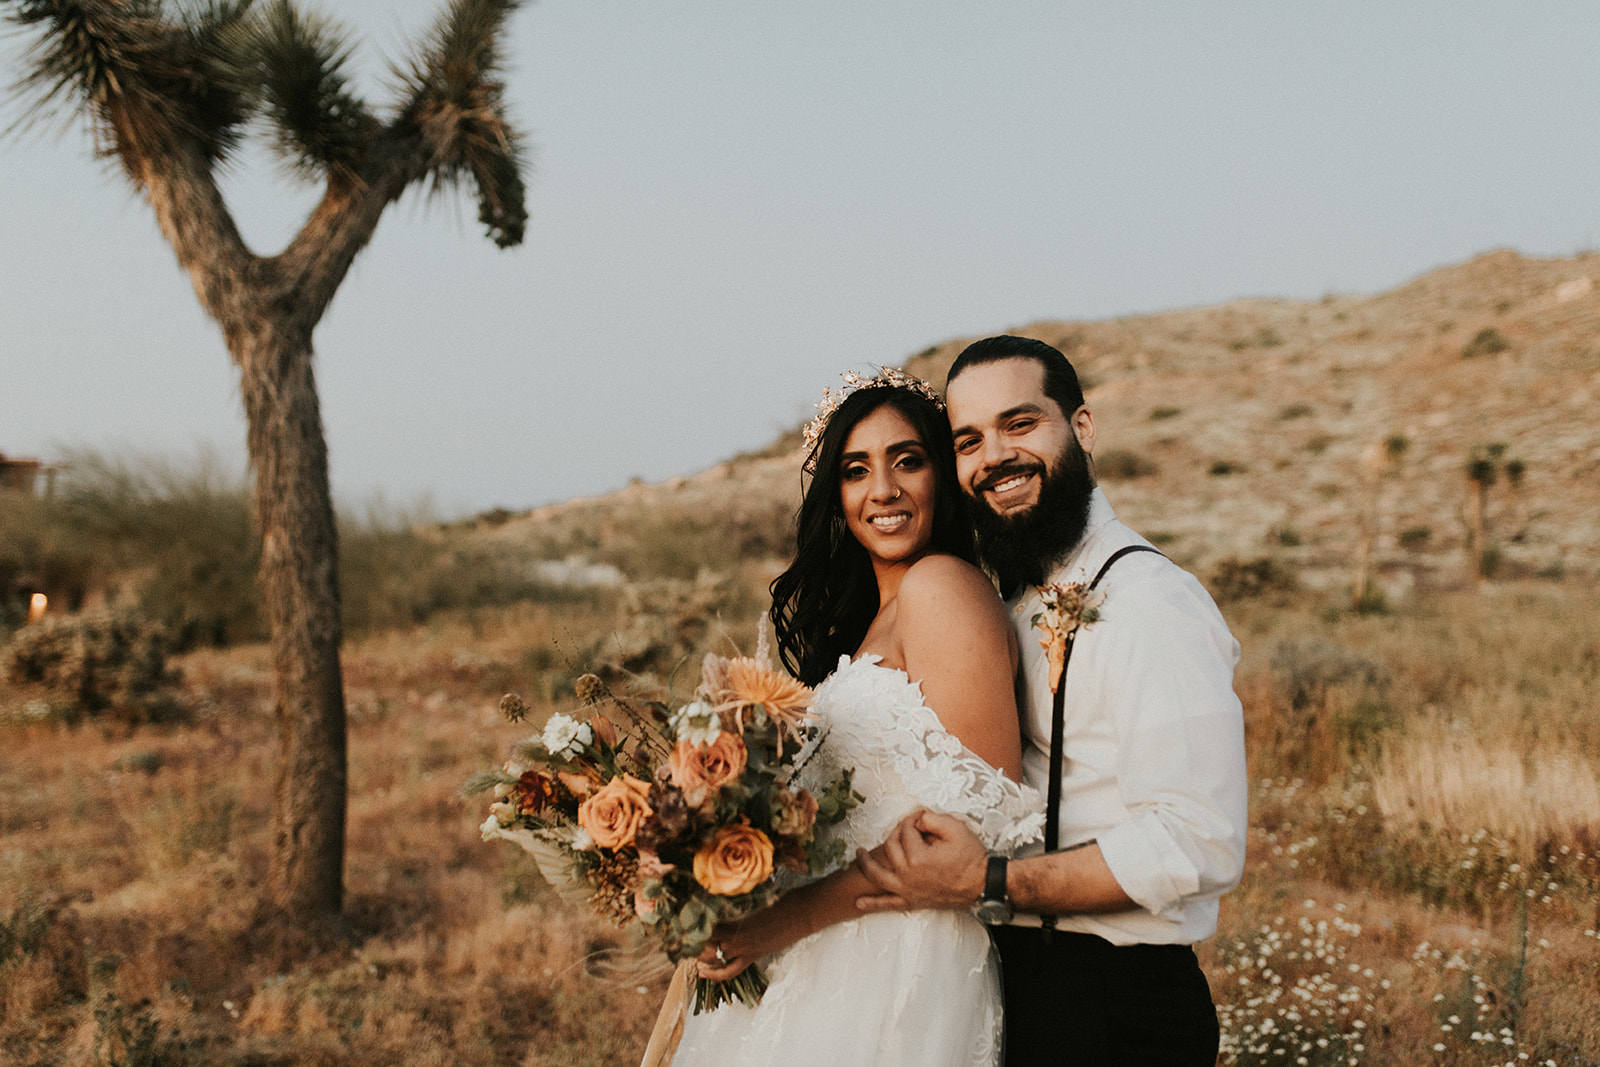 Joshua_Tree_Elopement_Hannah_Alena_Photography-241.jpg